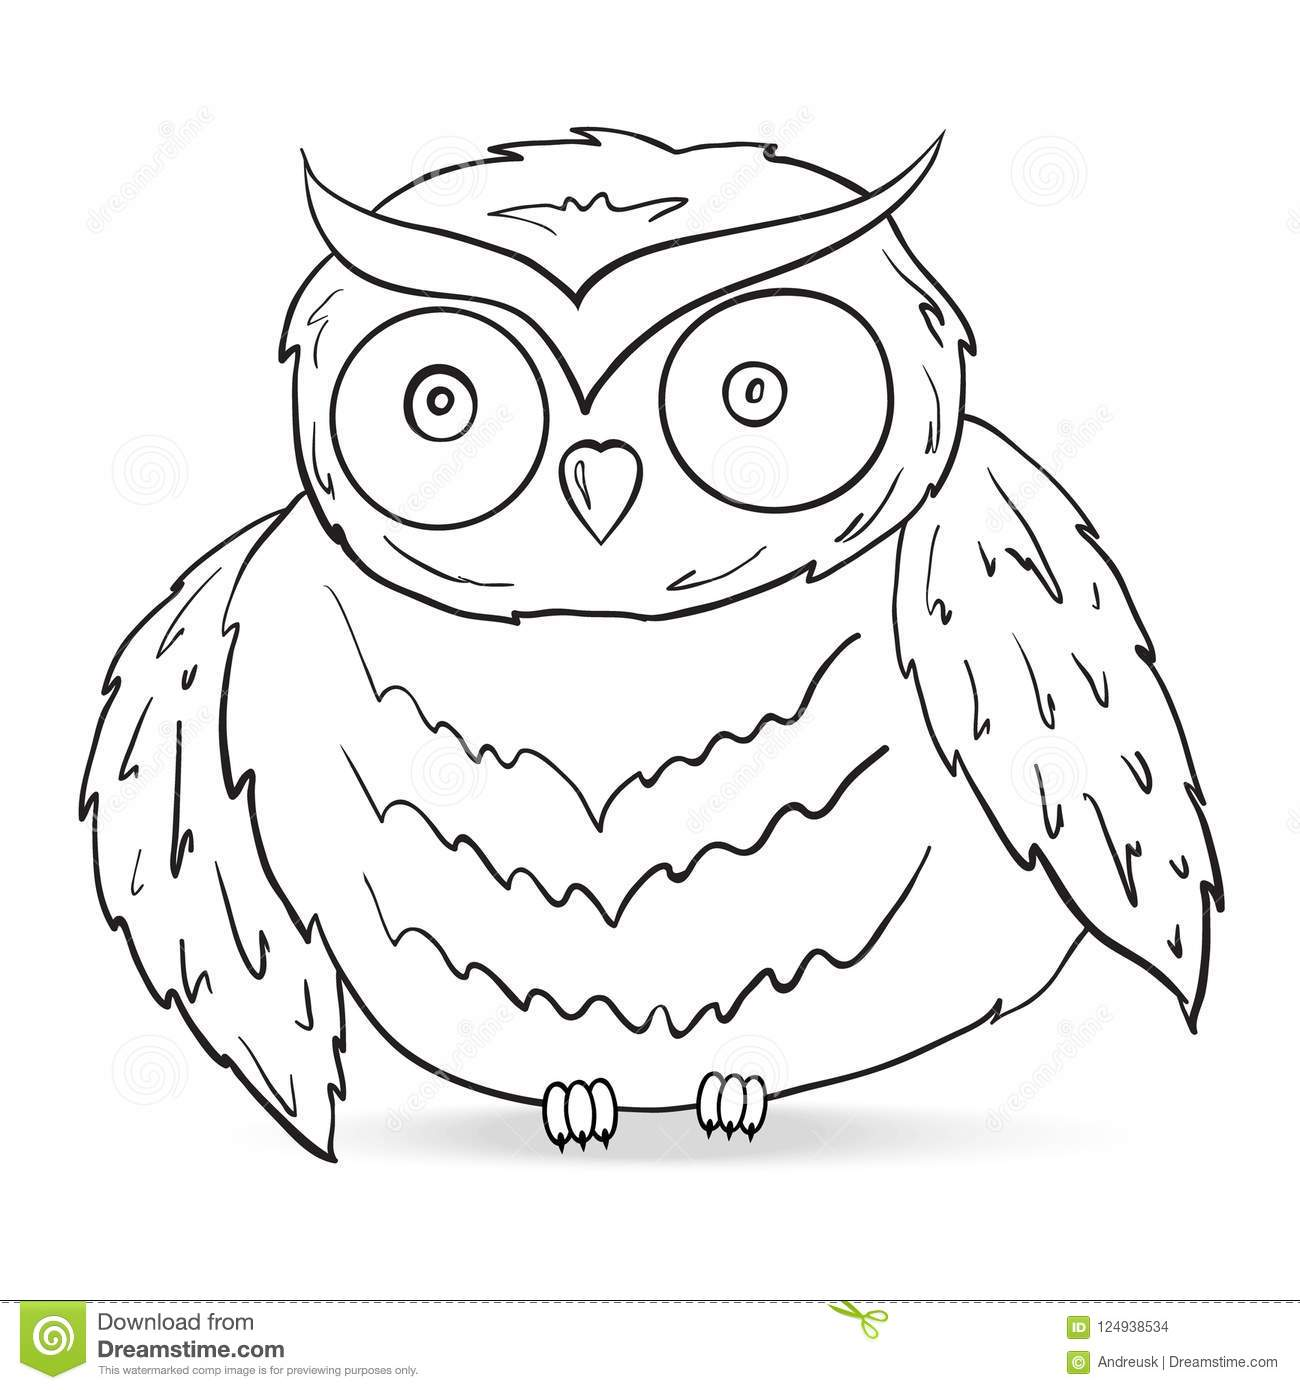 Owl silhouette vector stock vector. Illustration of coloring - 124938534